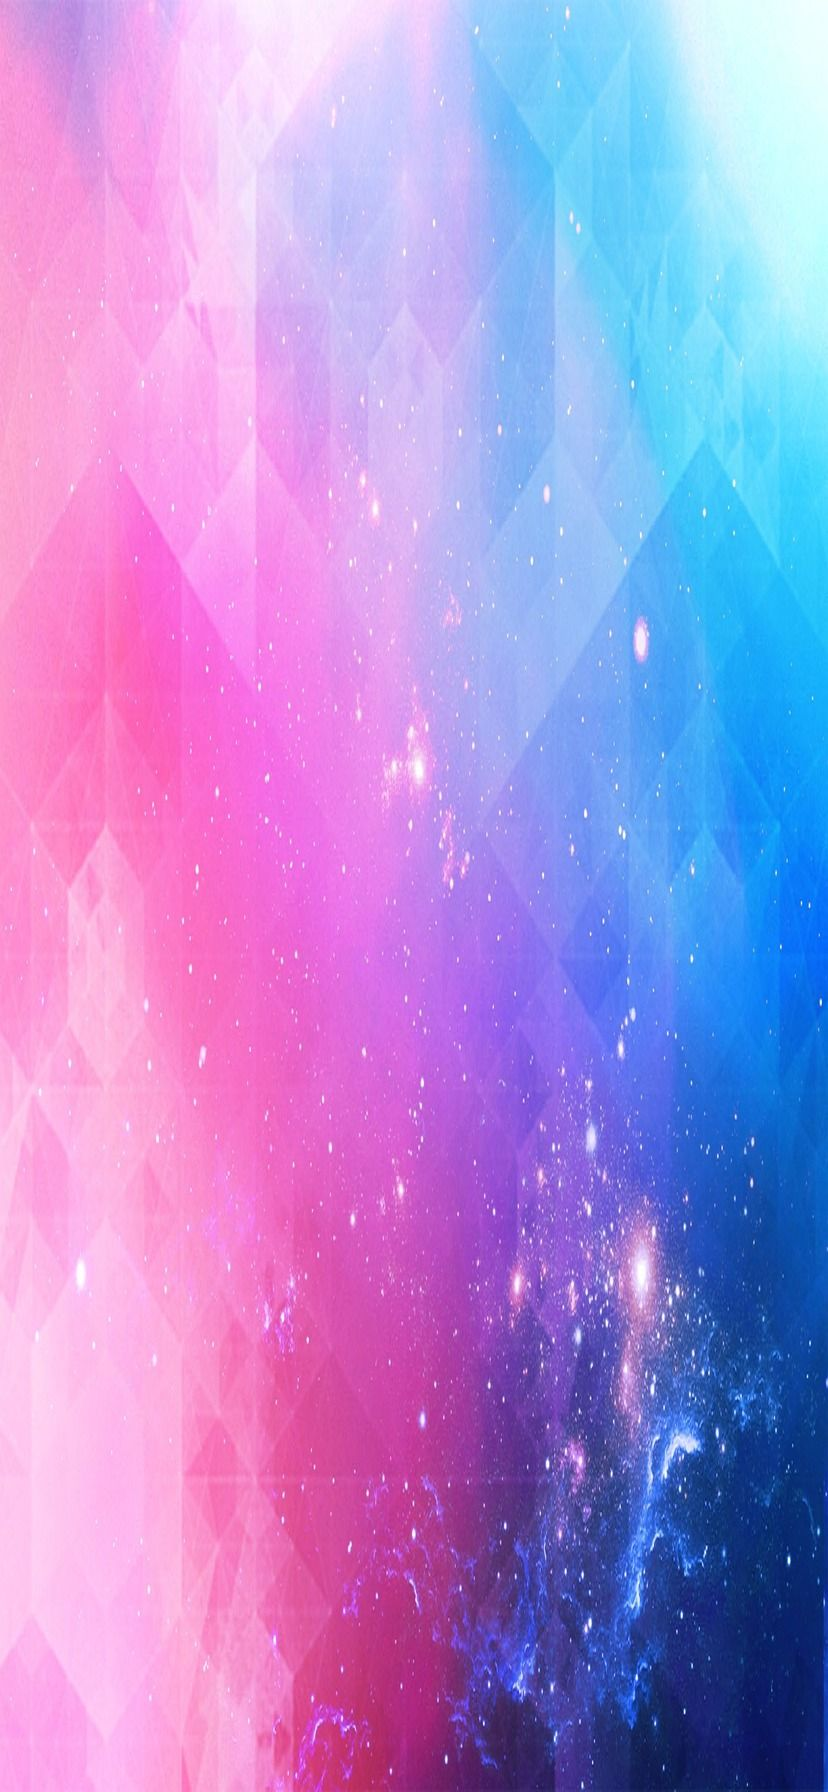 Best Iphone 11 Wallpaper Hd Download In 2020 Abstract Textured Background Back Wallpaper